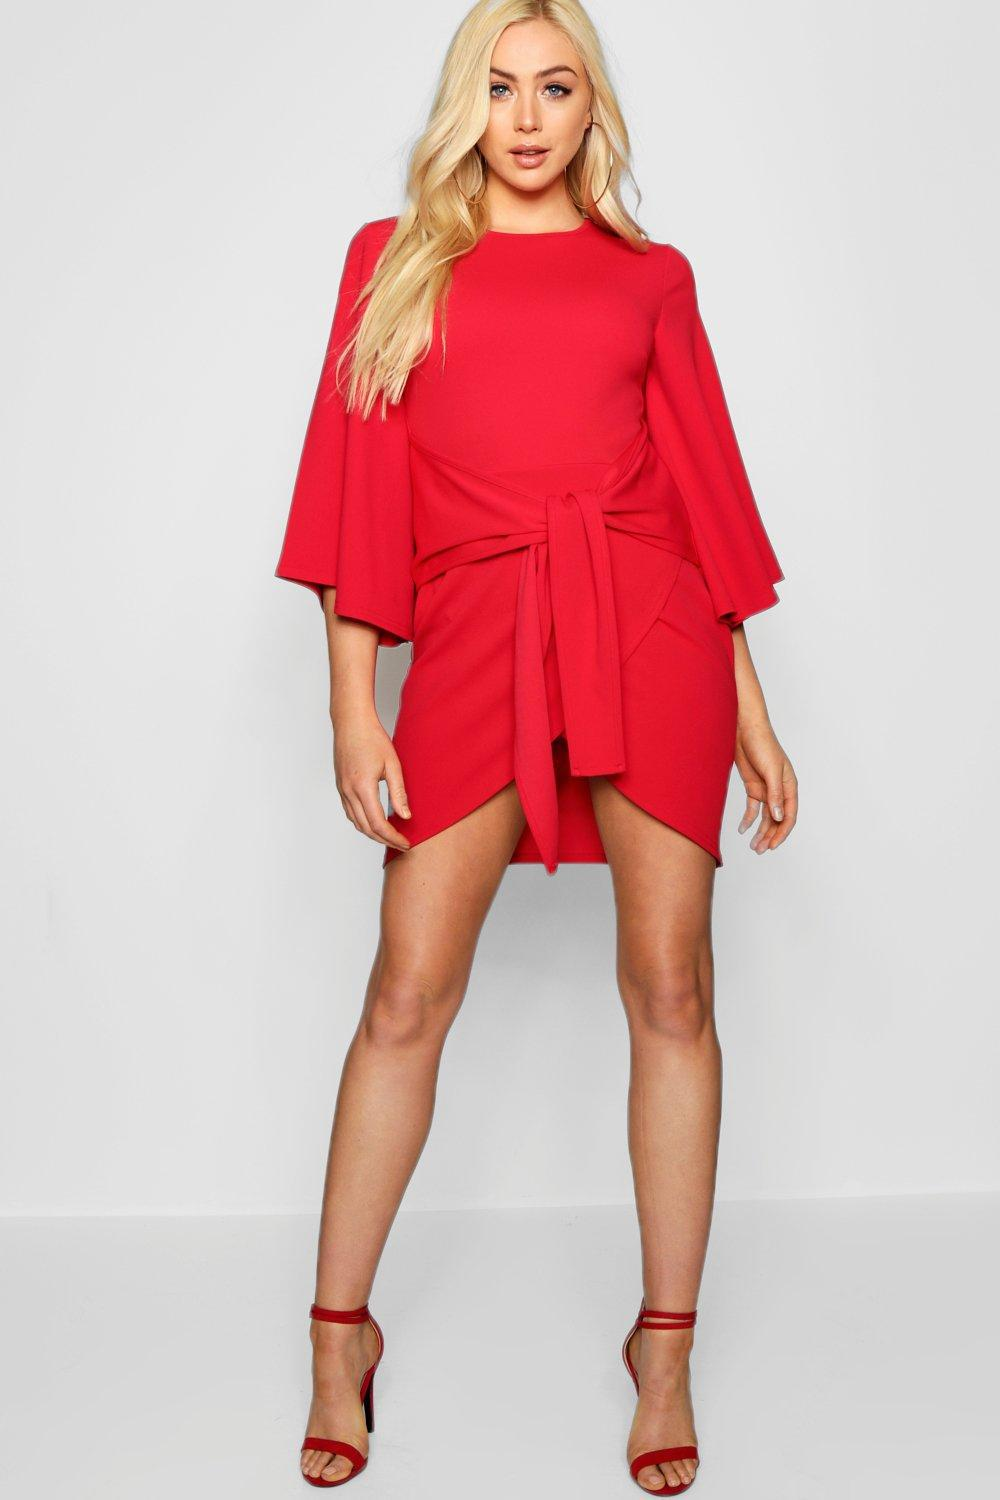 5bb239a999a7 Gallery. Previously sold at: Boohoo · Women's Kimono Dresses Women's Wrap  ...